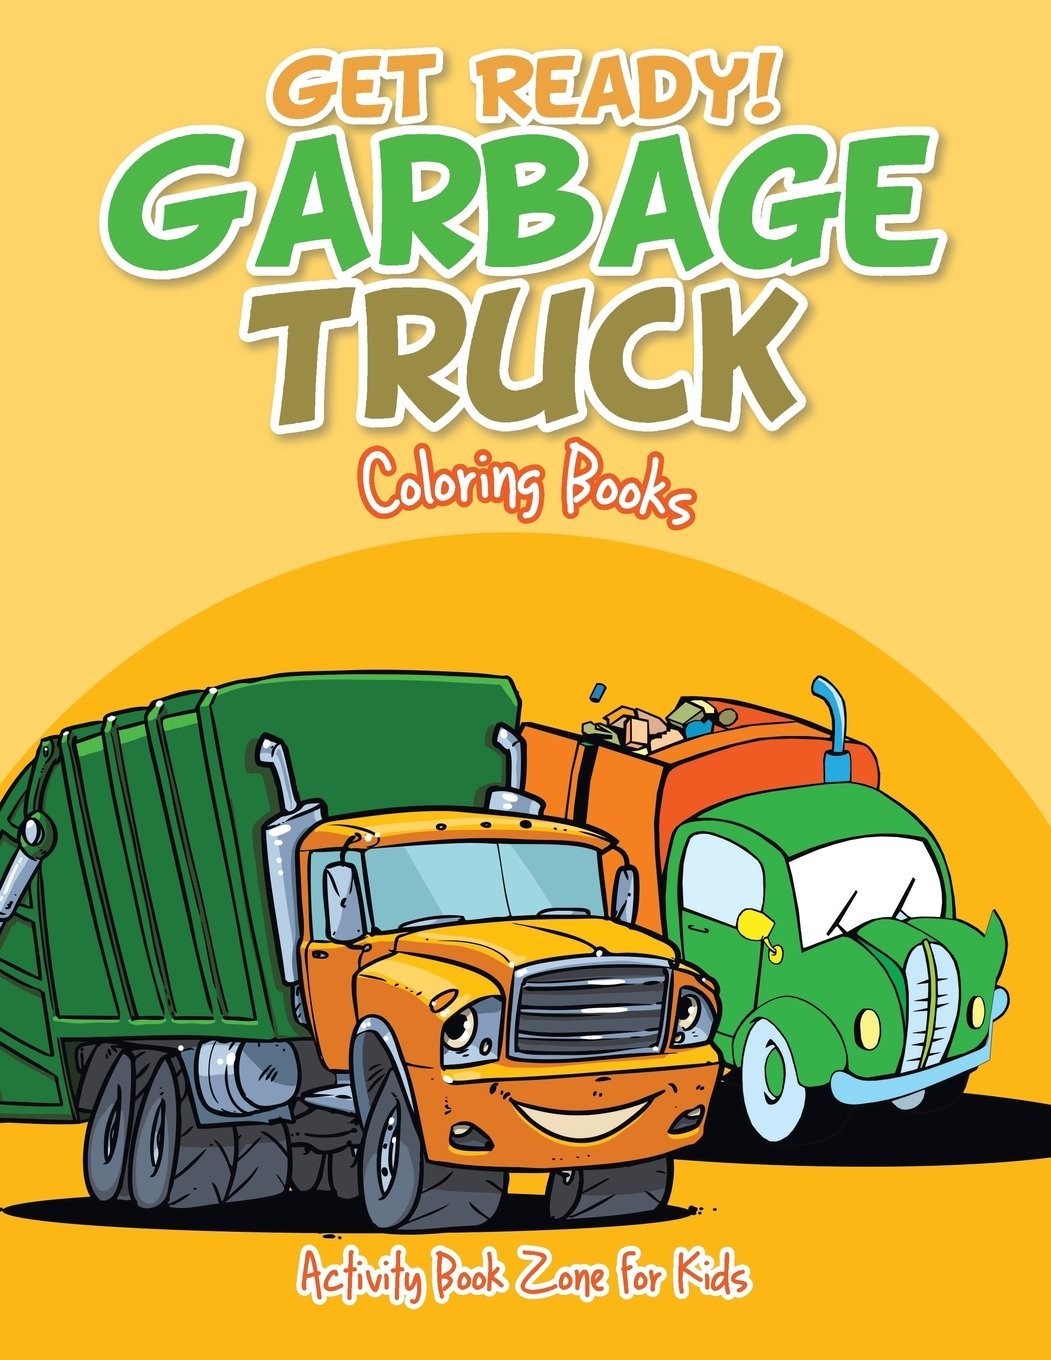 - Get Ready! Garbage Truck Coloring Books: For Kids, Activity Book